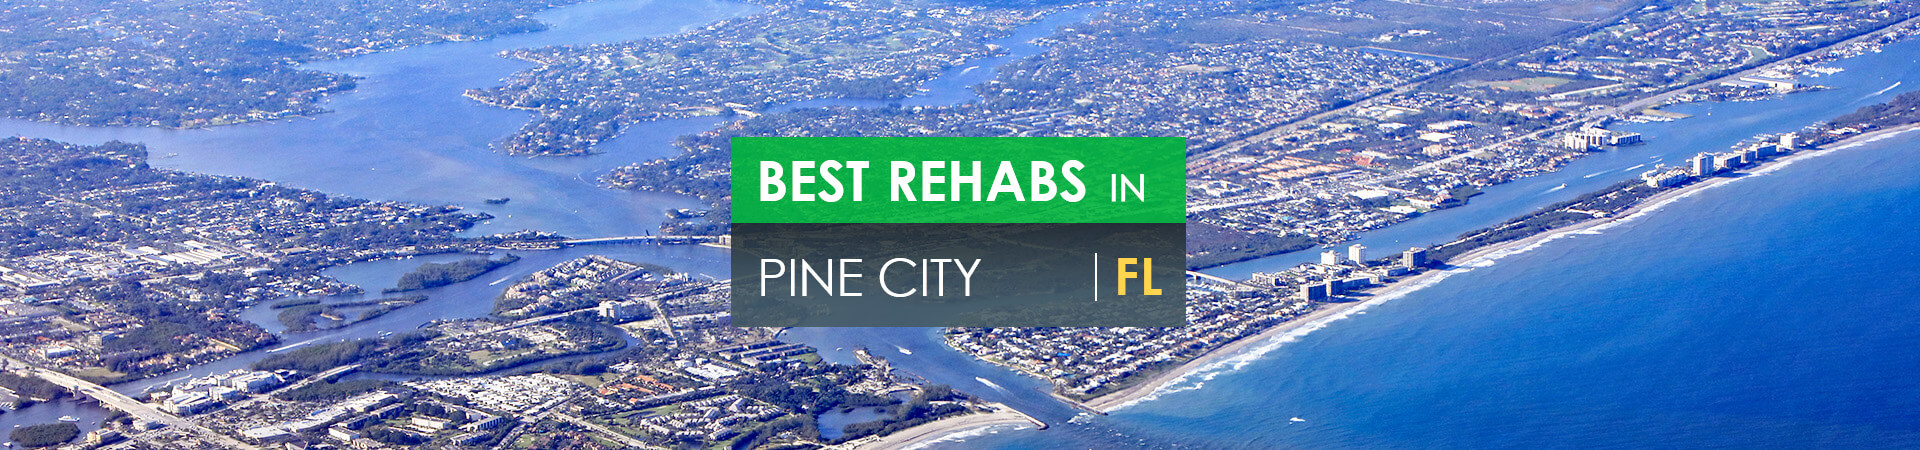 Best rehabs in Tequesta, FL